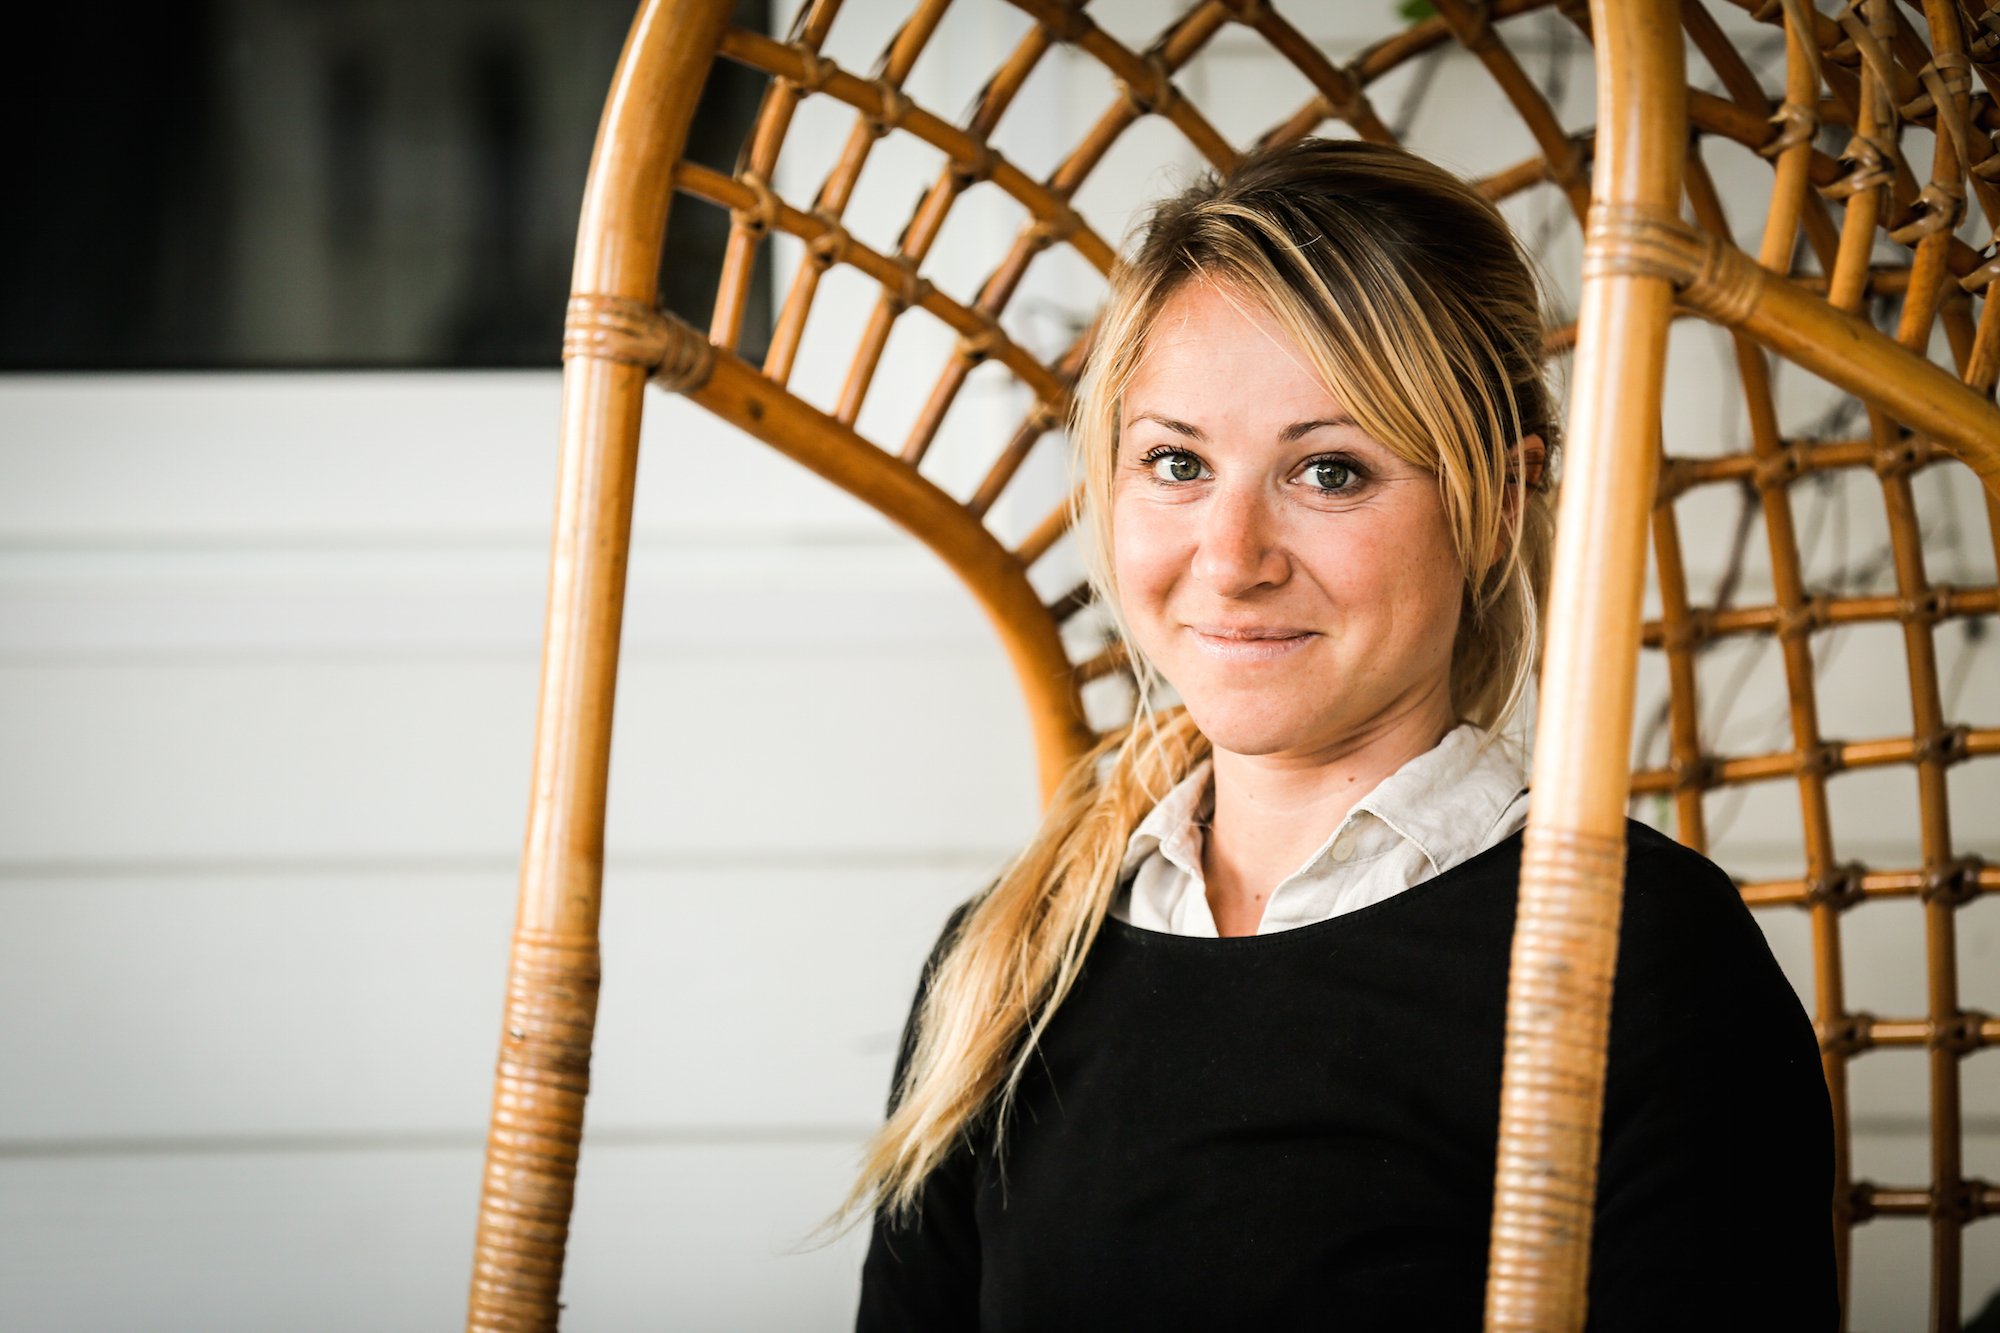 Mirthe Eckl is a Functional Medicine Practitioner in London Harley Street and Notting Hill. She further has a background working as a physiotherapist and teaching yoga.